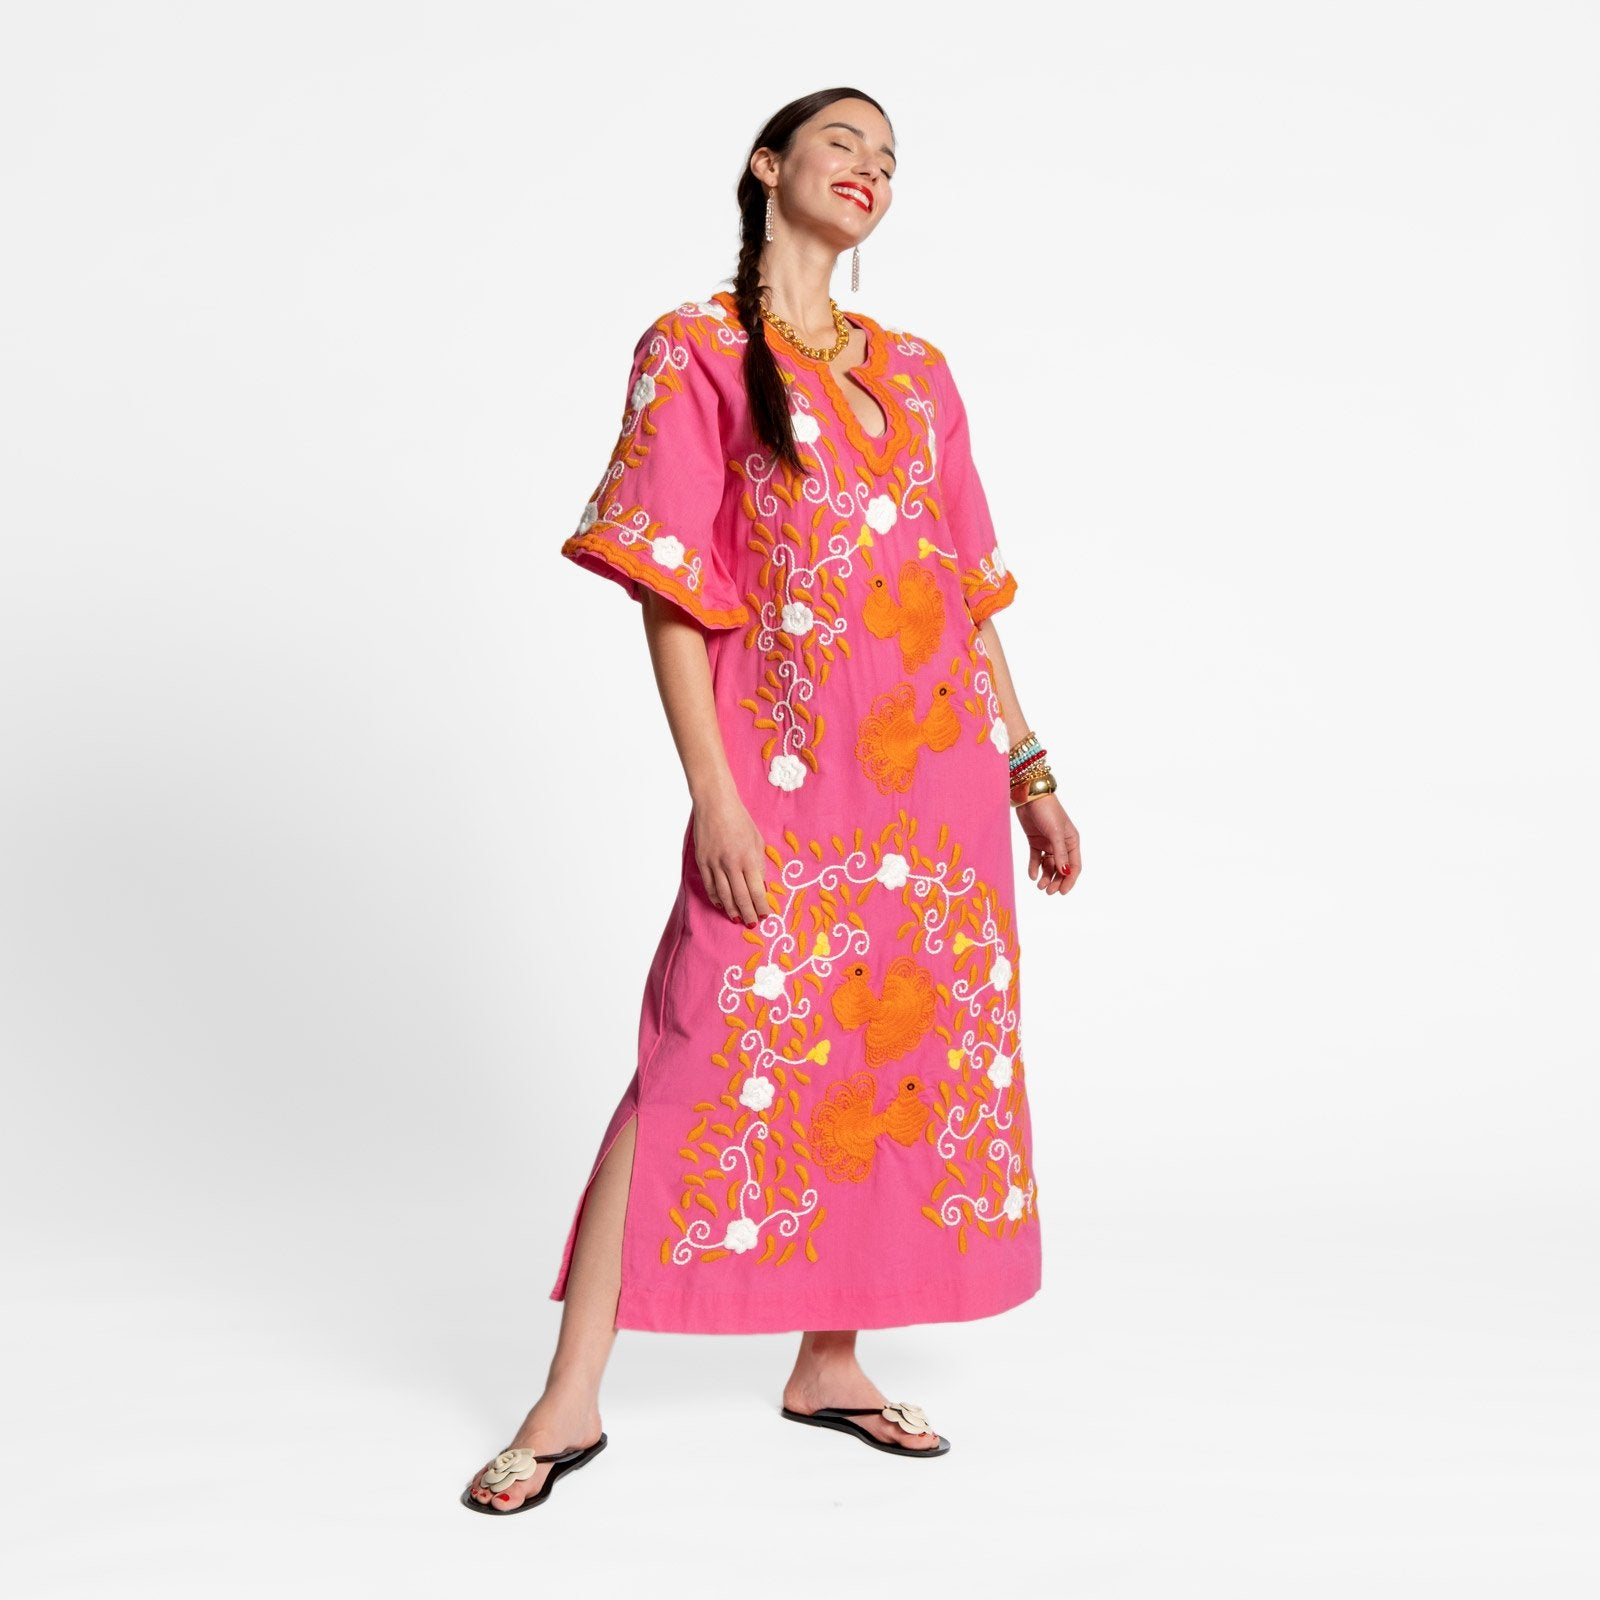 Peacock Caftan Dress Pink Coral Yellow